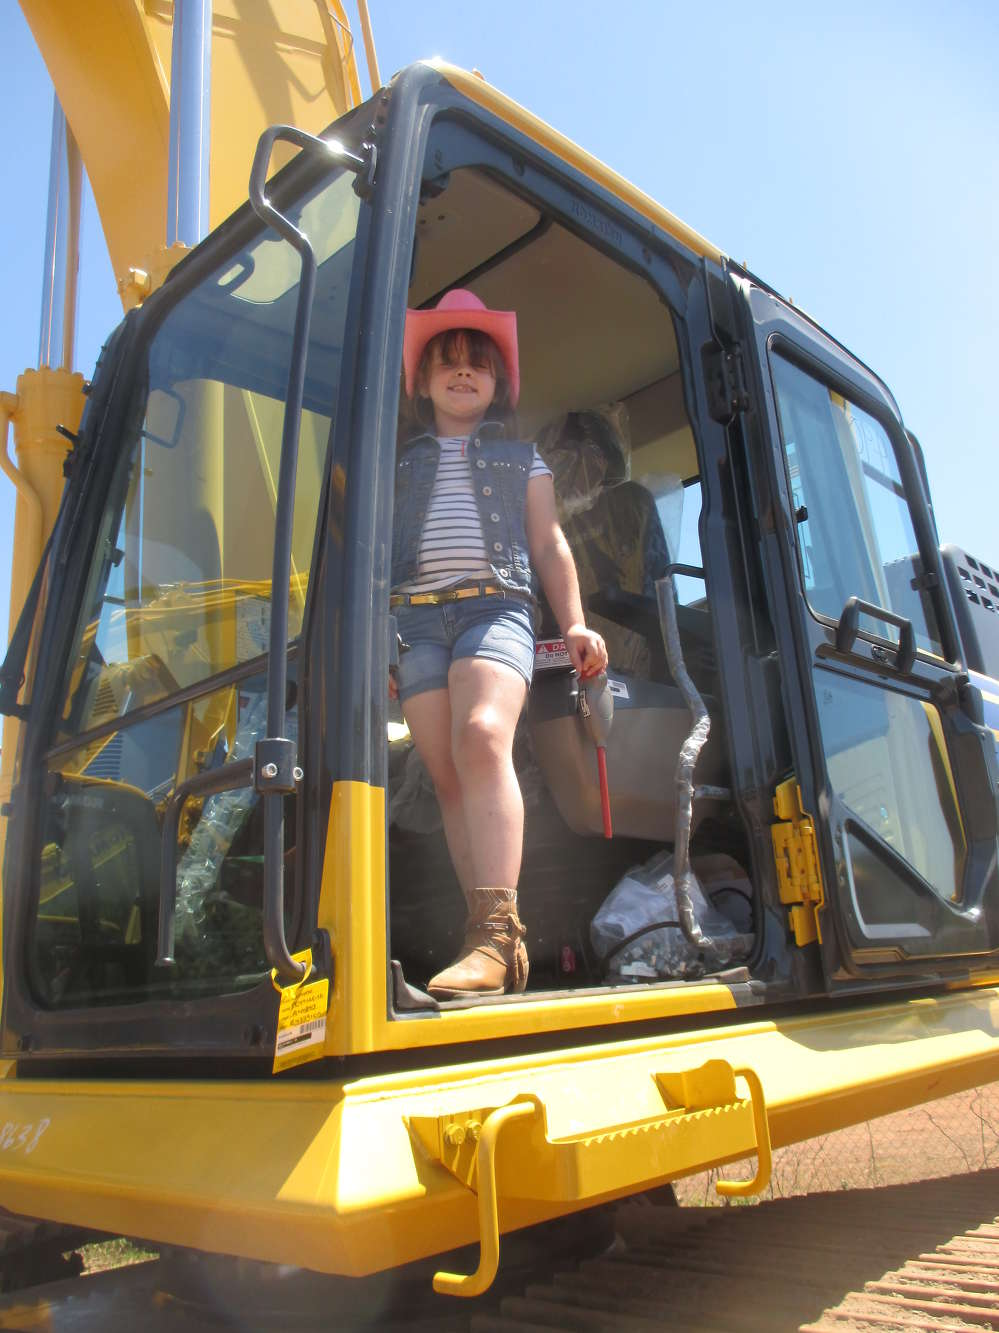 Cecilia Ruiz, wearing an impressive pink cowboy hat, enjoyed the machinery. Cecilia was visiting with her grandparents, owners of Orlando Excavation Inc., of Chaplin, Conn.